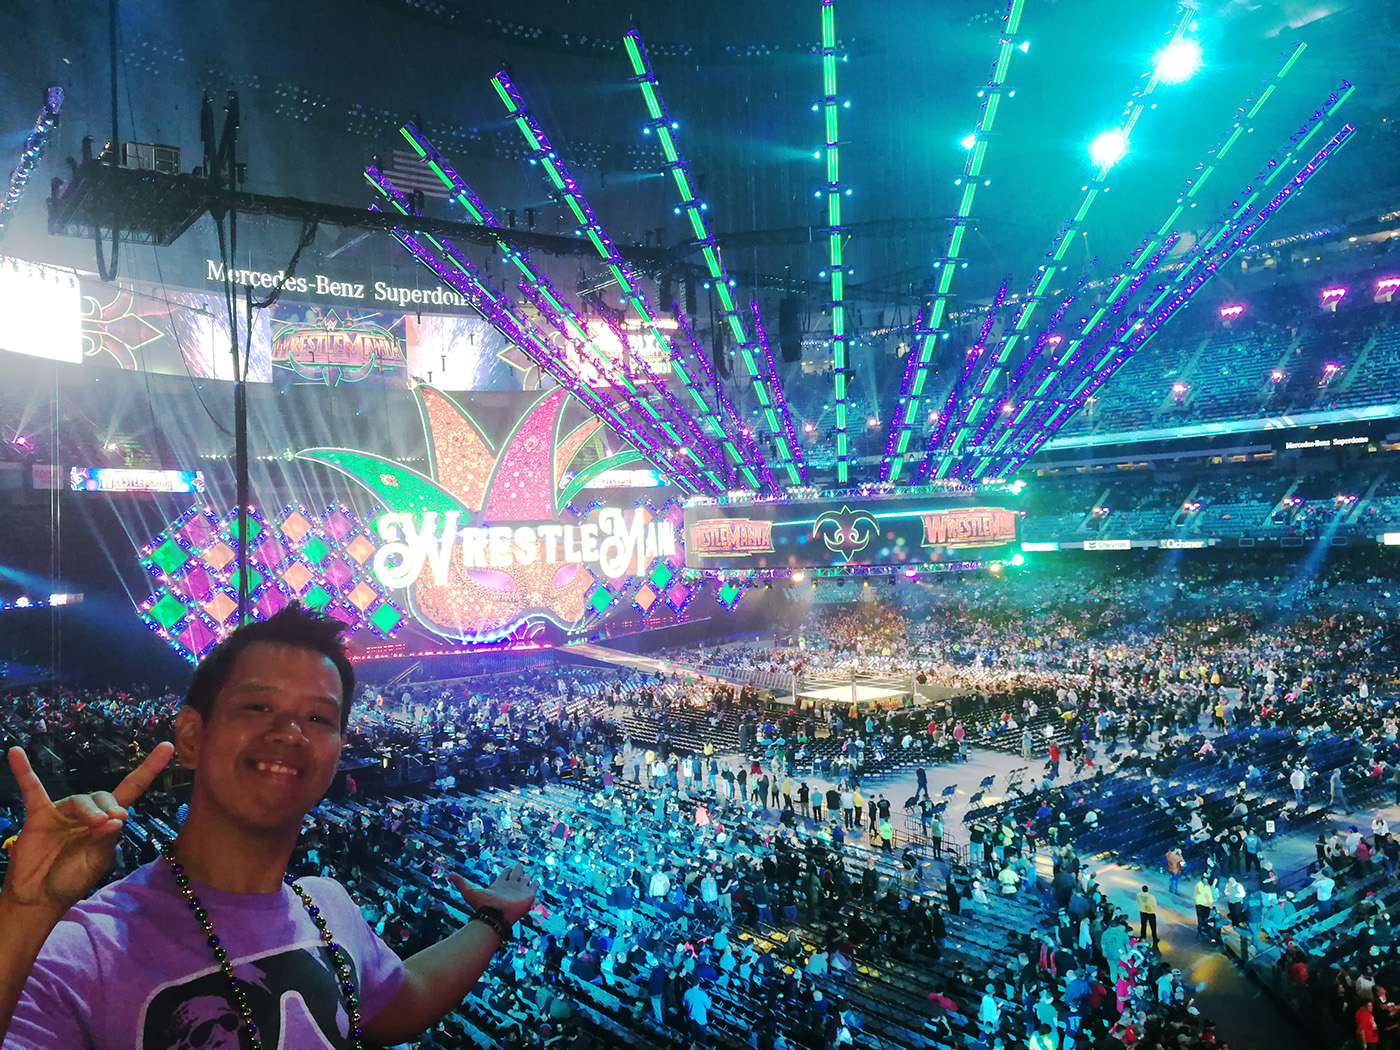 The writer inside the Superdome.